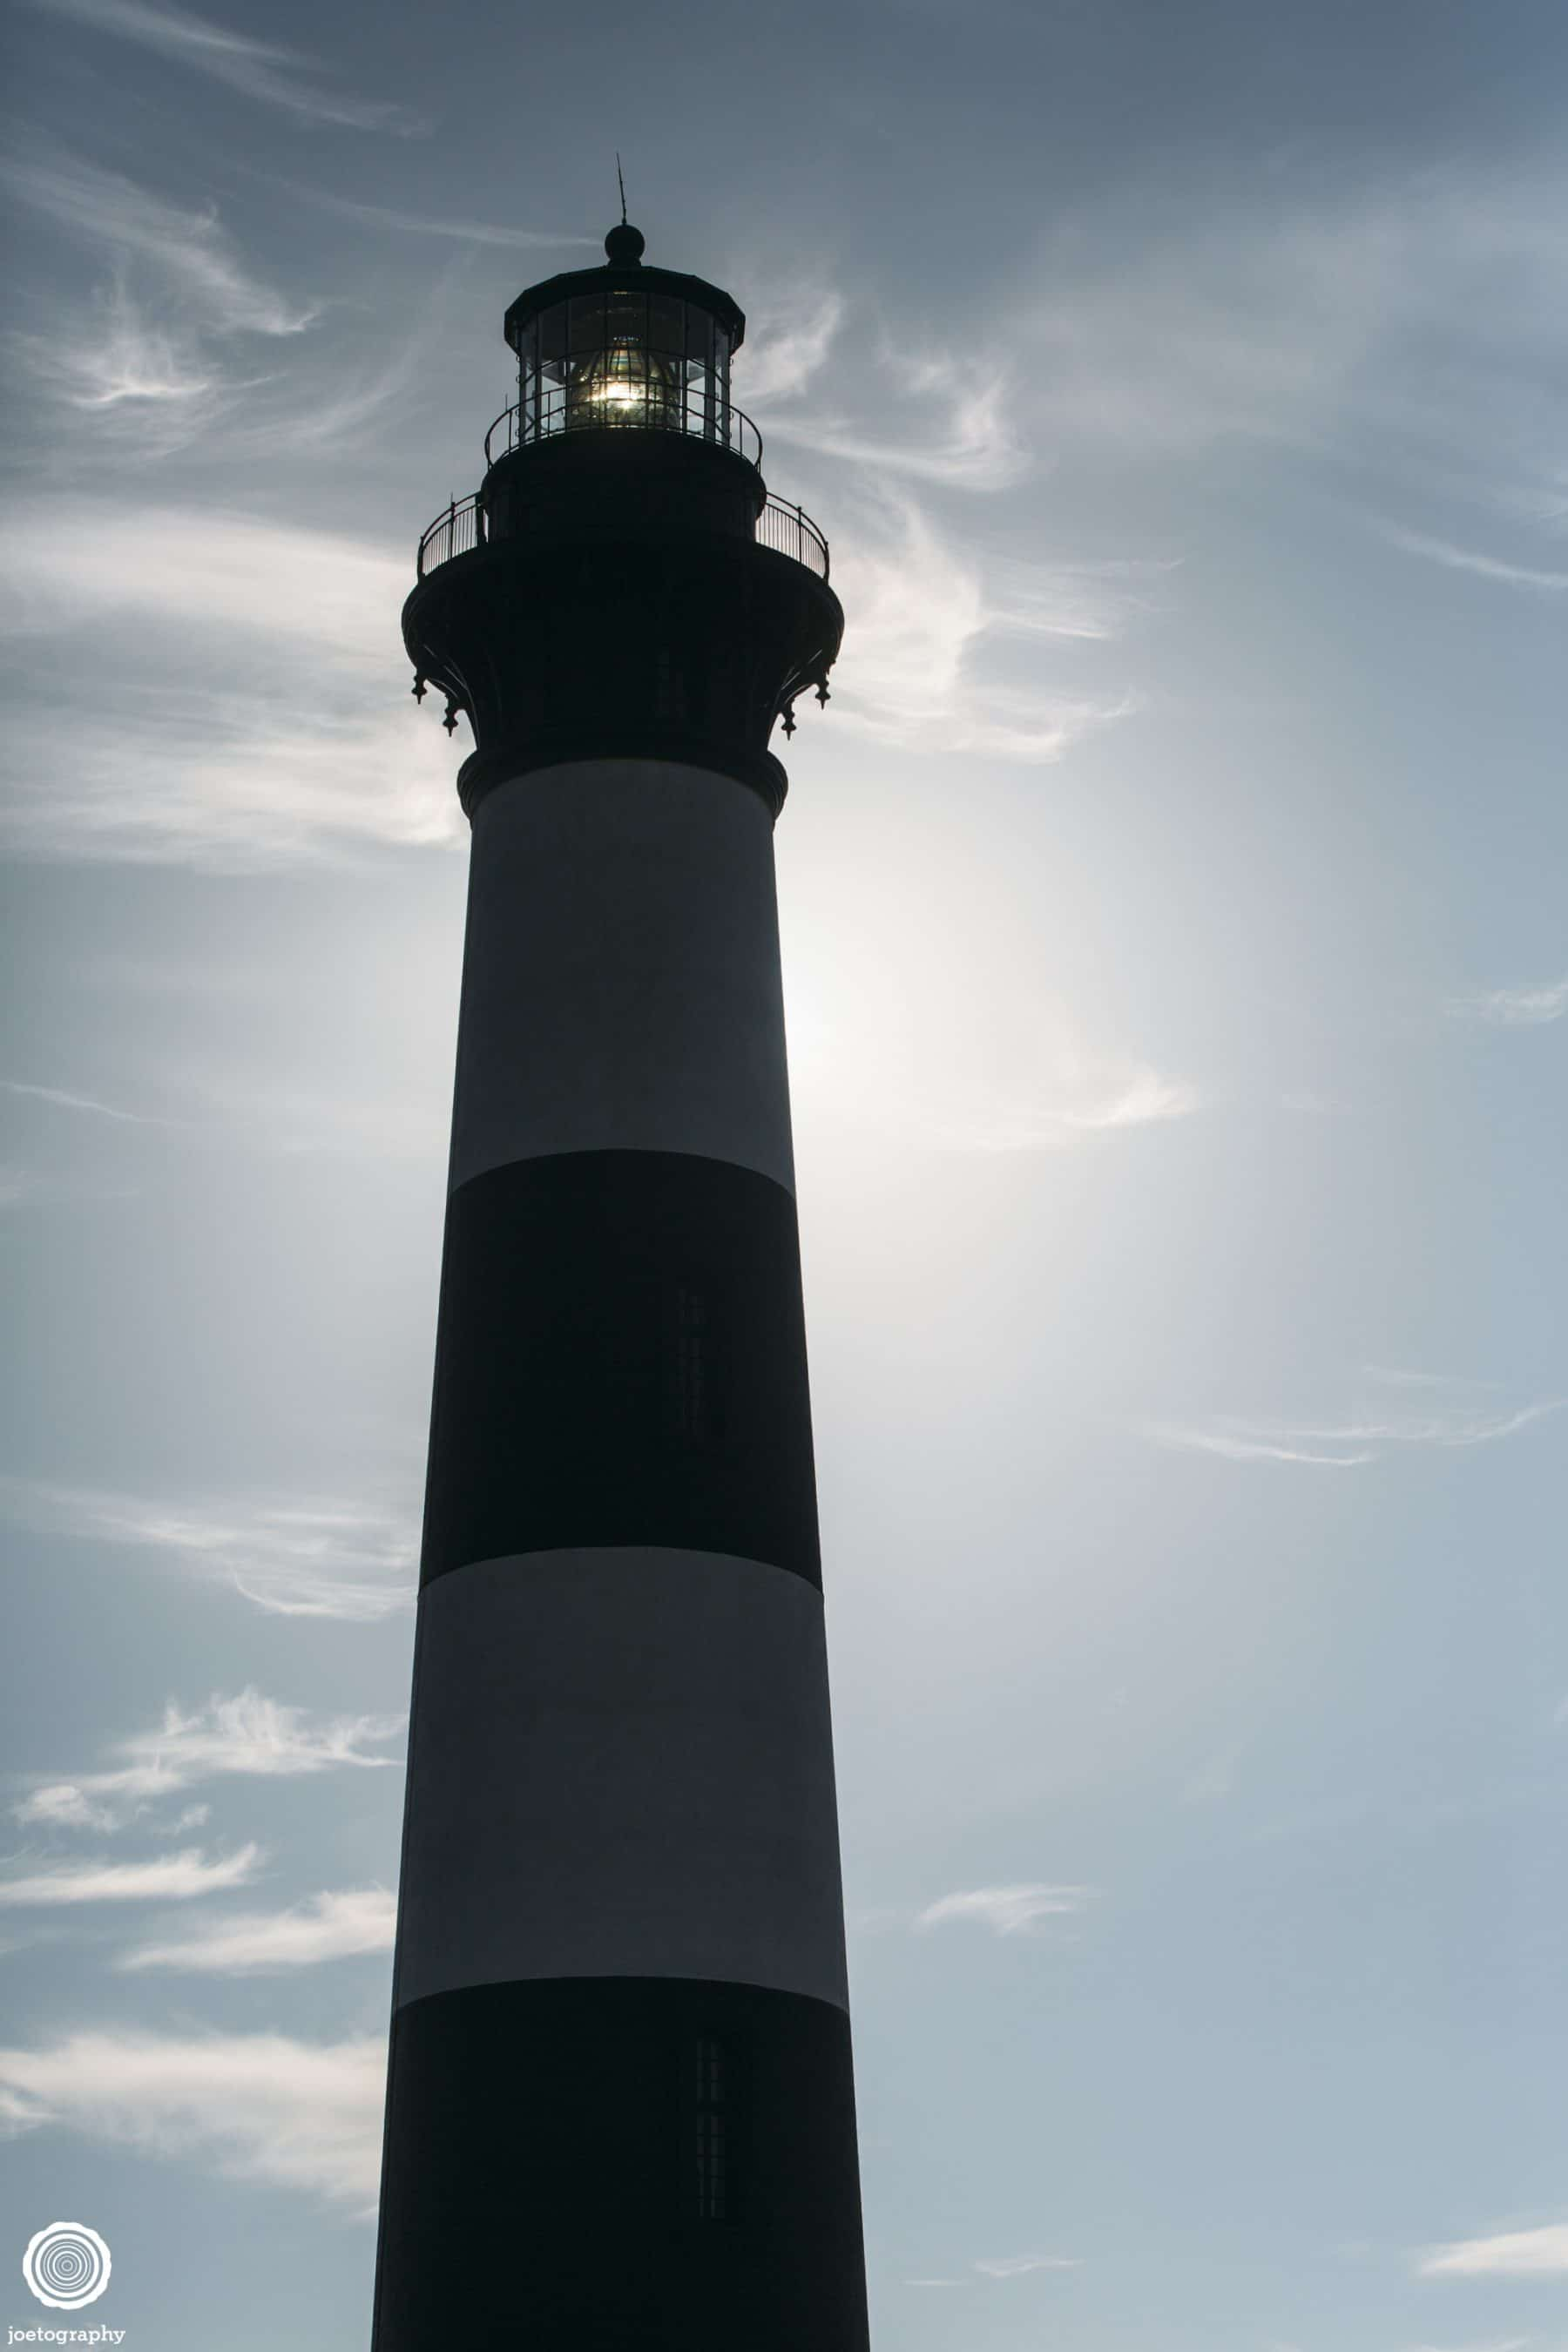 Outer-Banks-North-Carolina-Travel-Photography-51